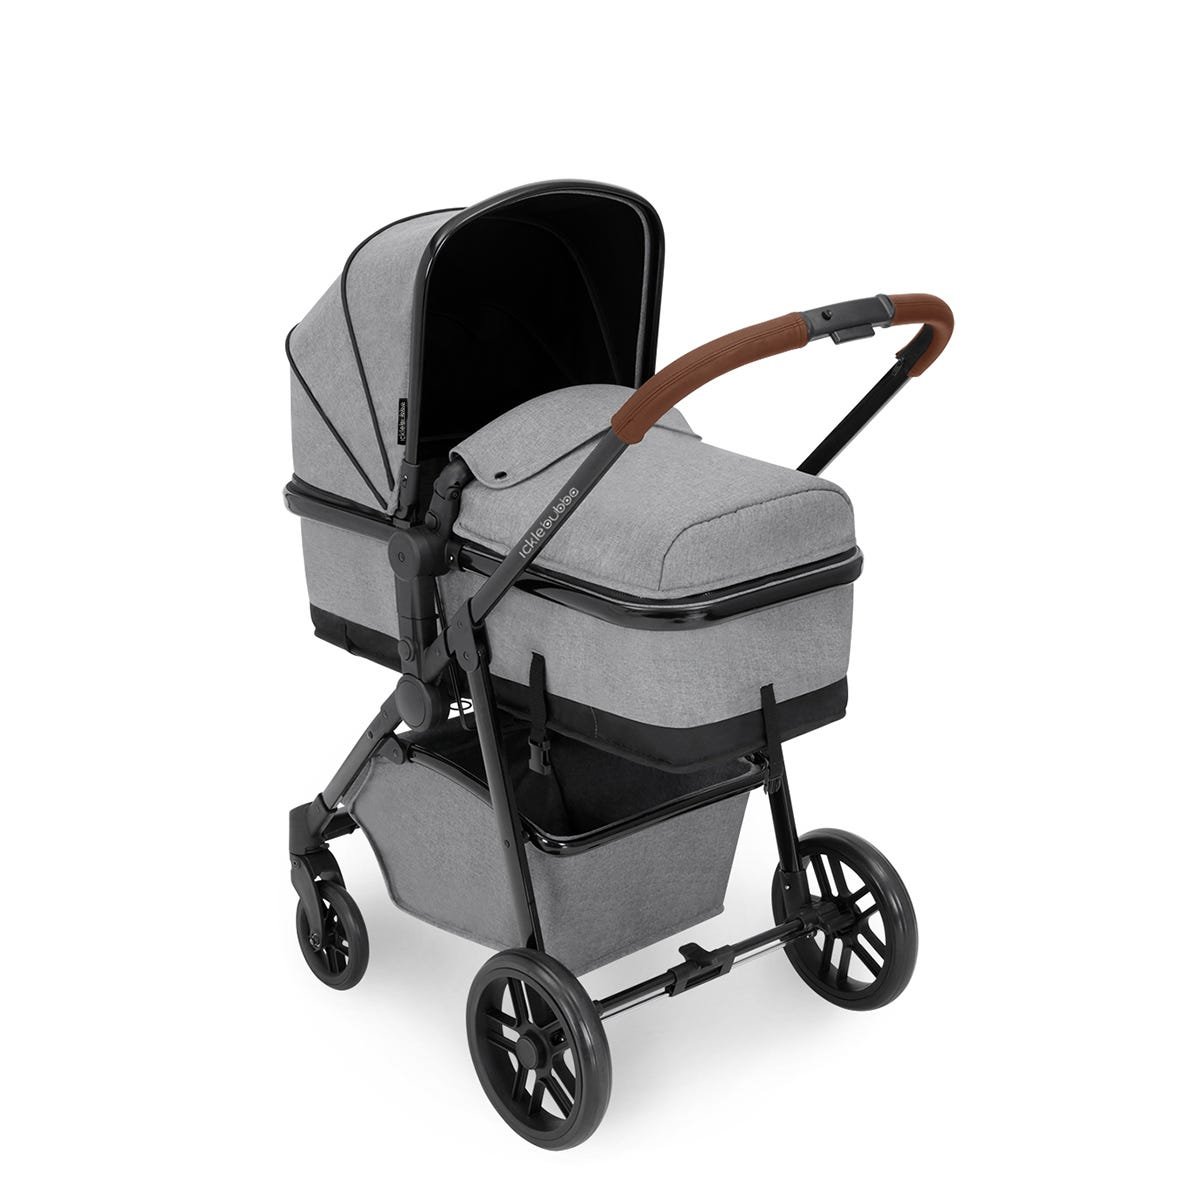 Ickle Bubba Moon 3 in 1 Travel System ISOFIX - Space Grey on Black with Tan Handles